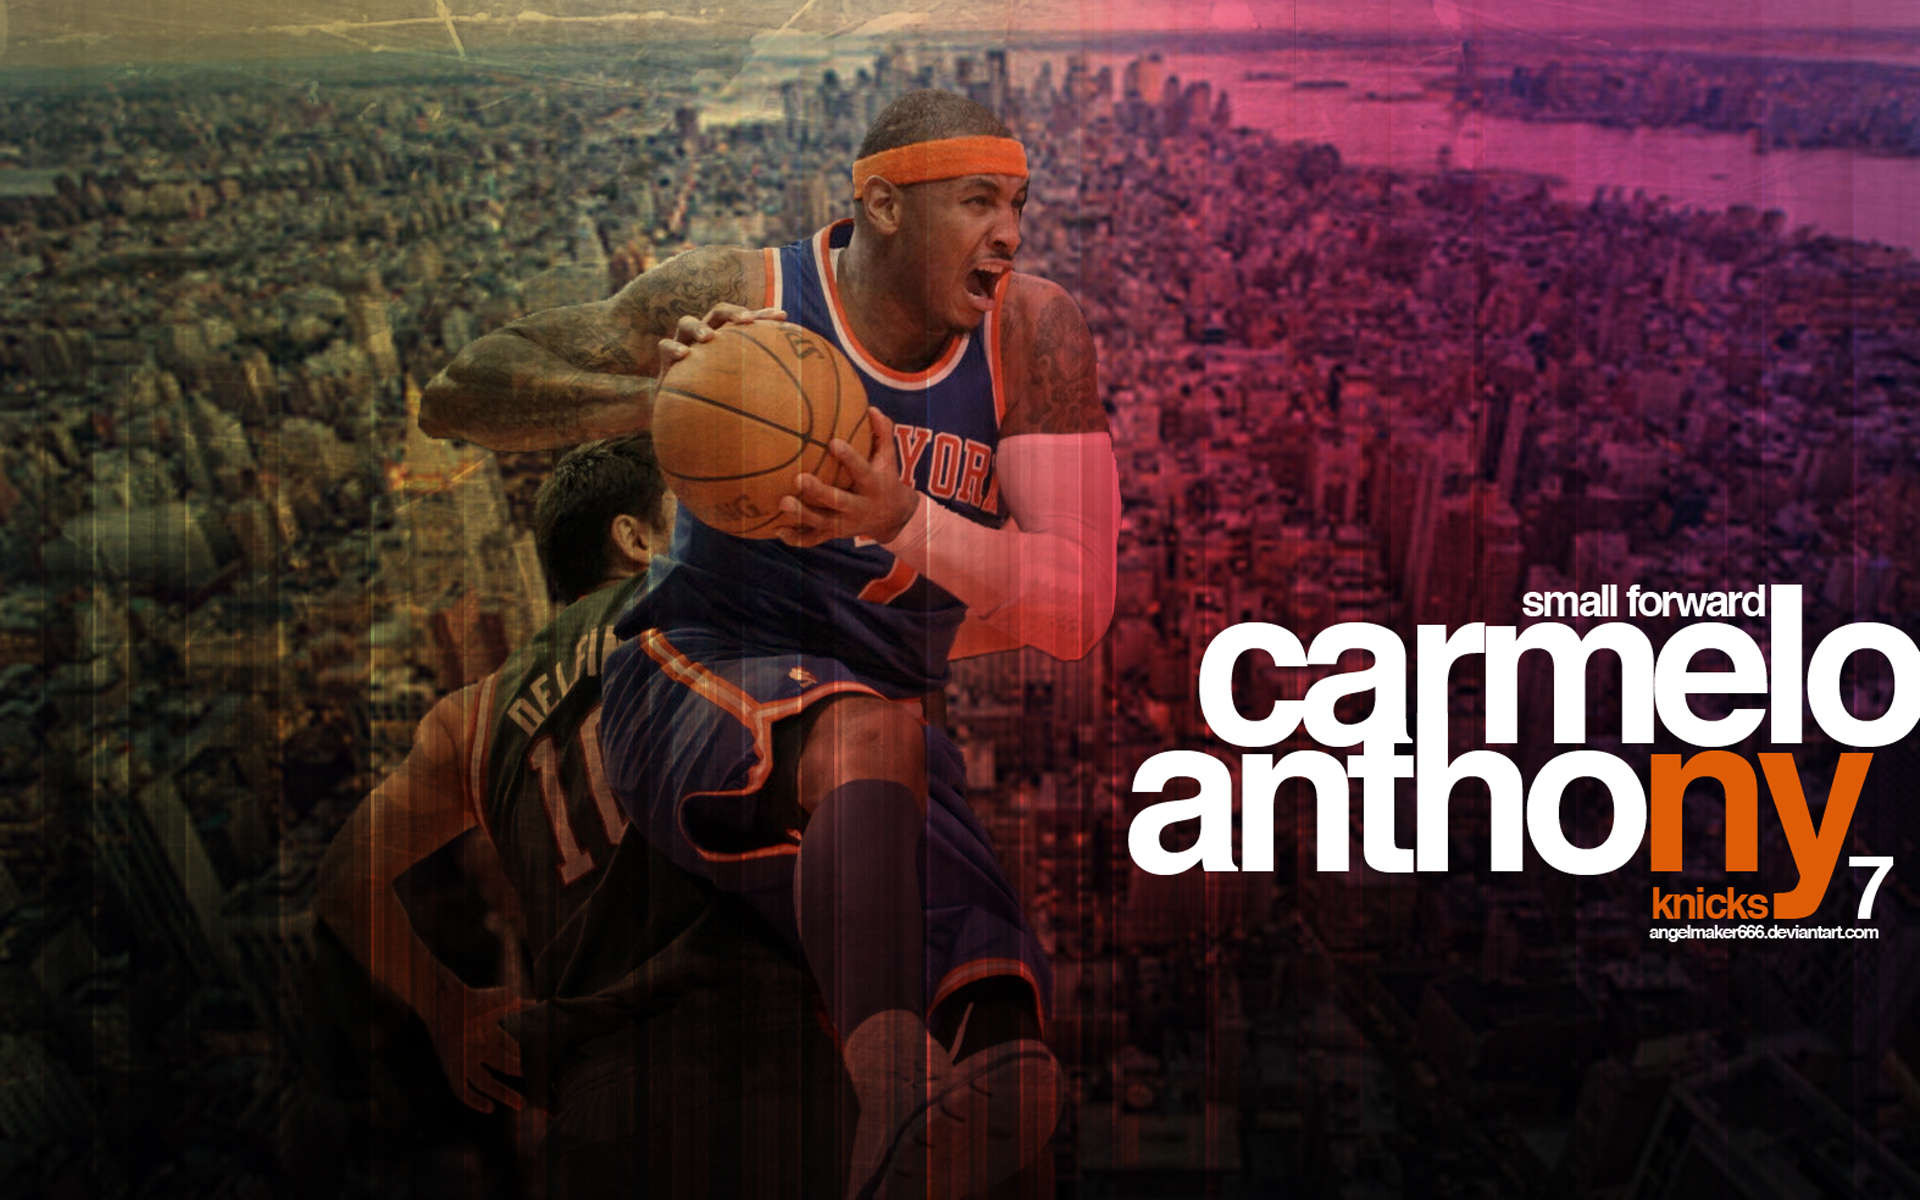 Melo New York Knicks Wallpaper by IshaanMishra on DeviantArt